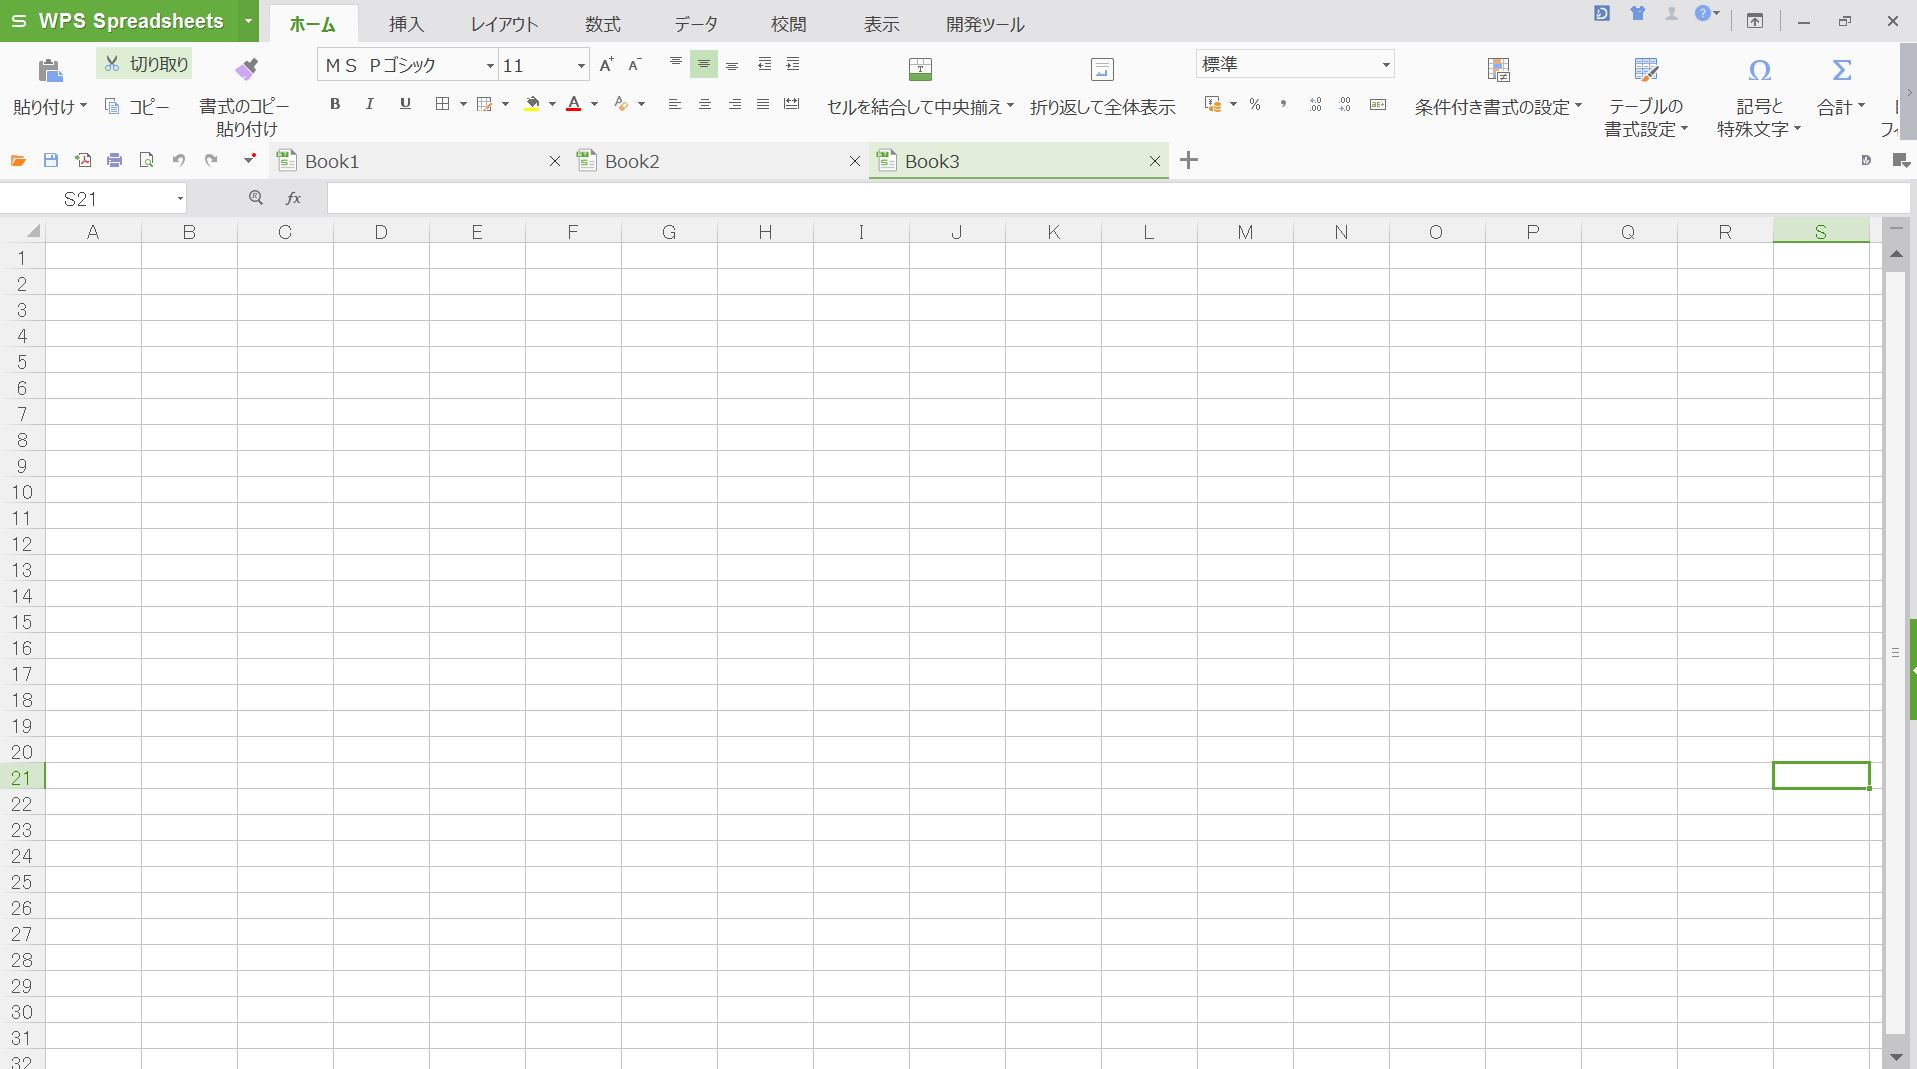 「WPS Spreadsheets」